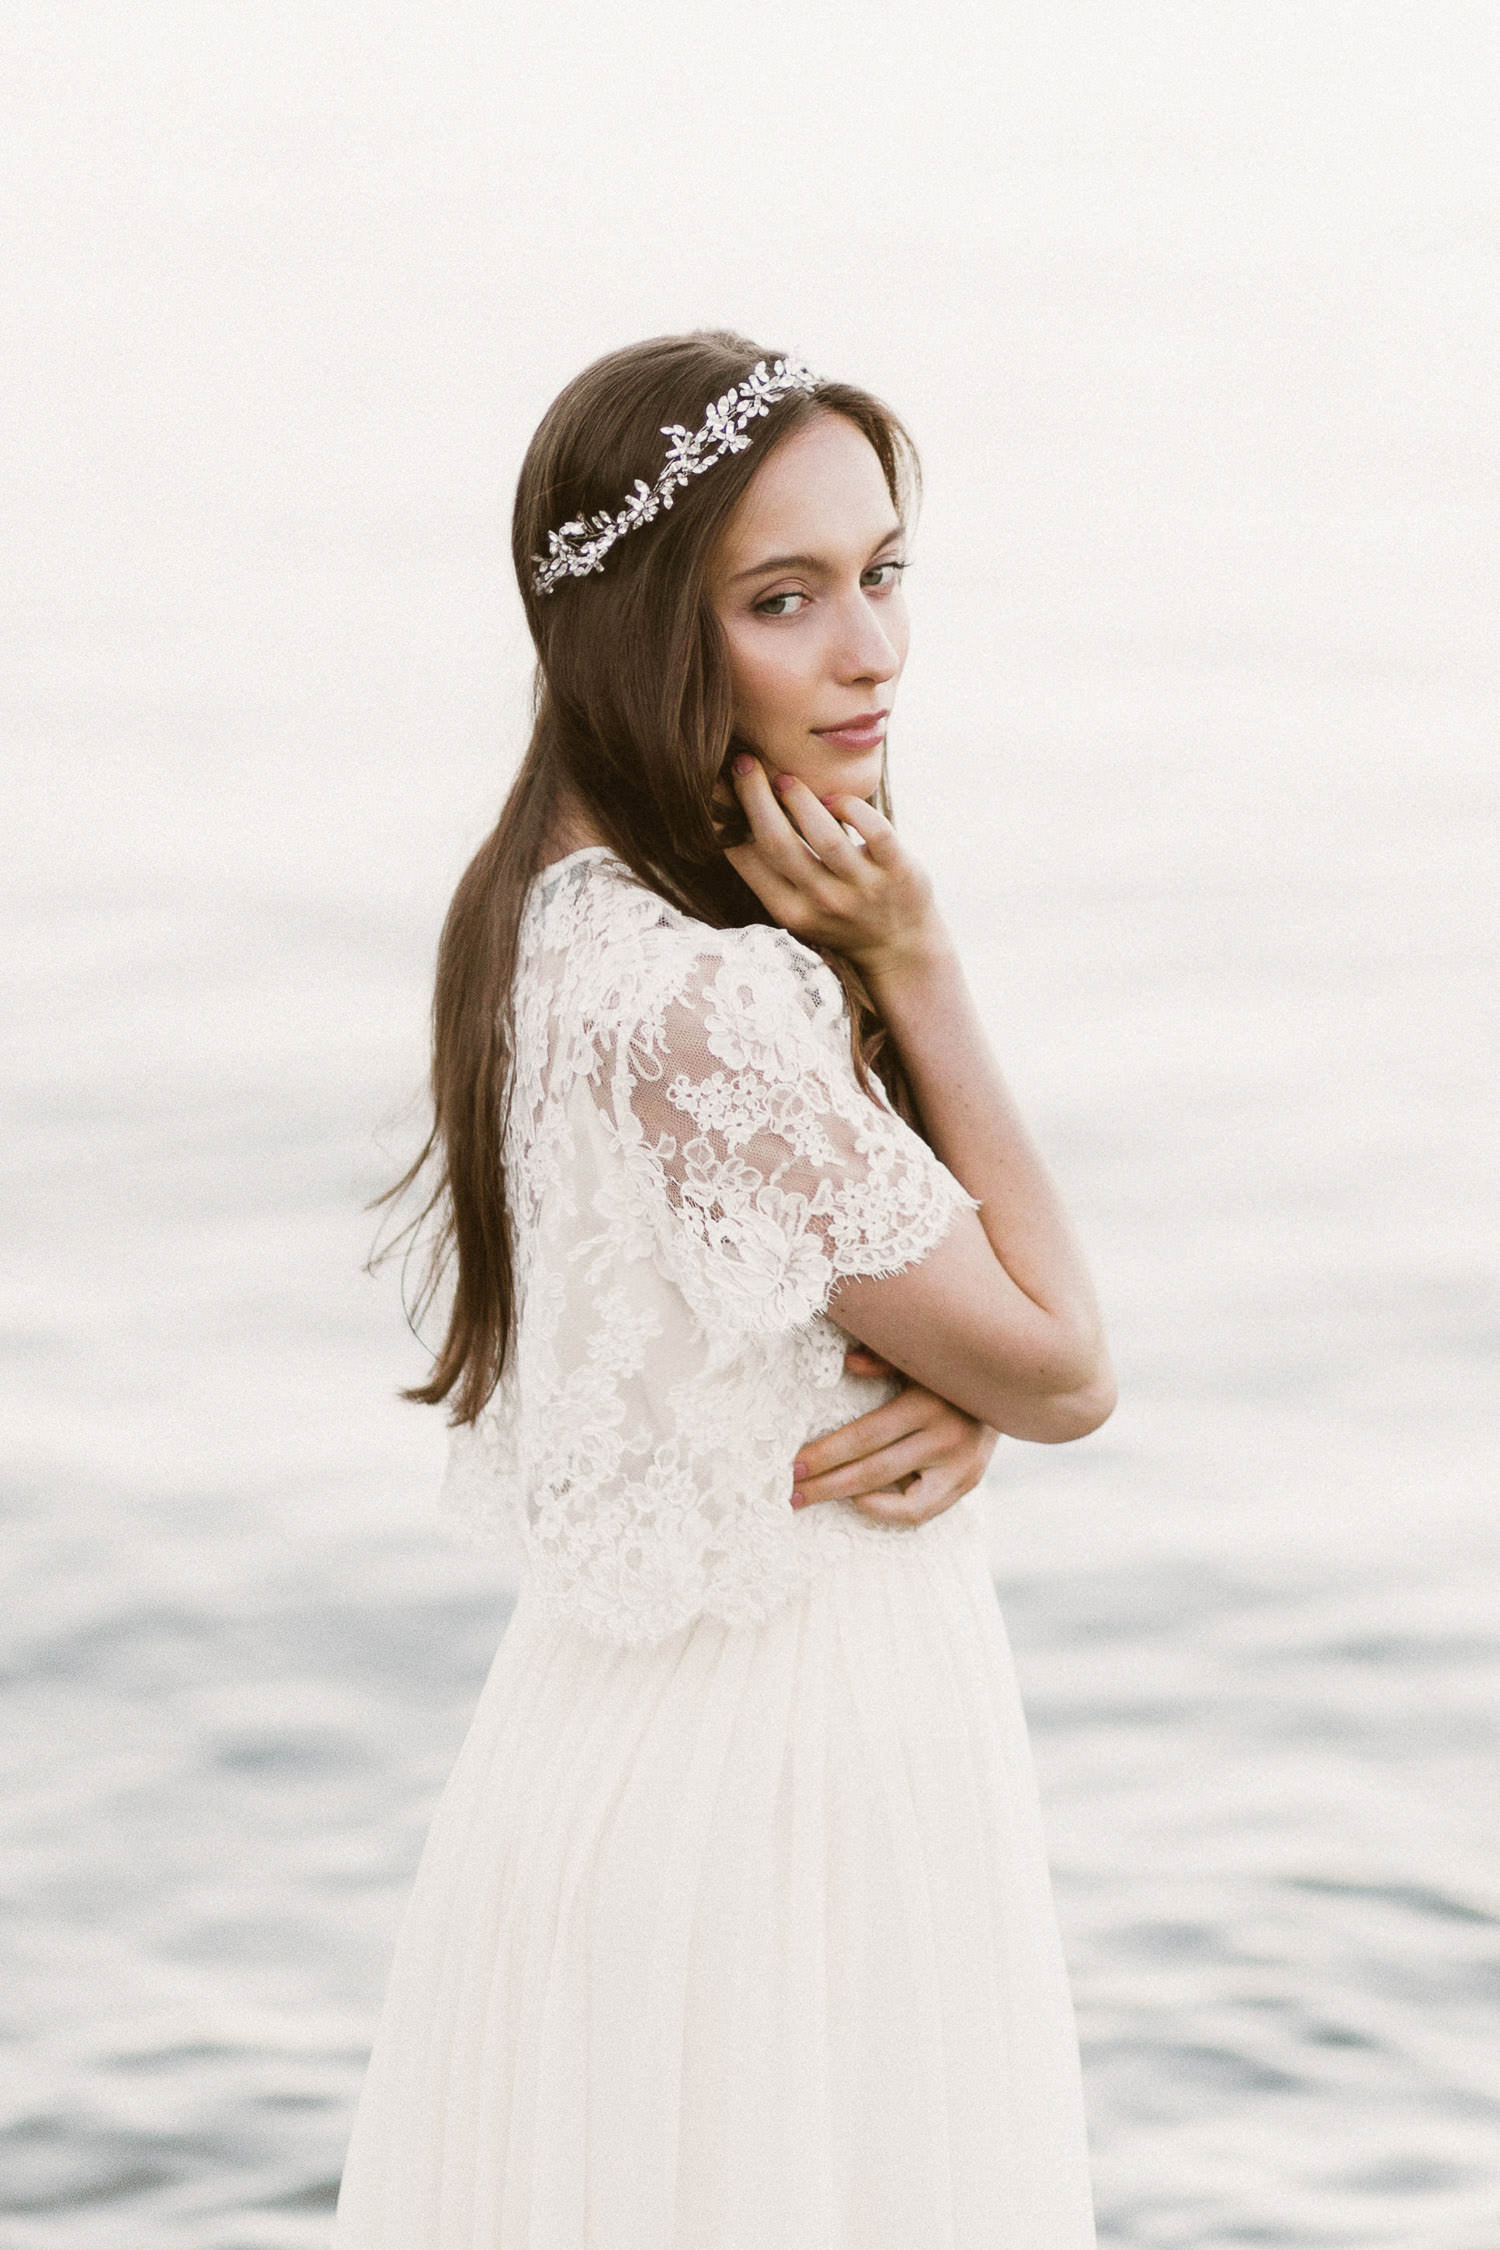 Ethereal Fine Art bride with a beautiful Alexandra Grecco gown - Photo: Camilla Anchisi, Italian destination wedding photographer